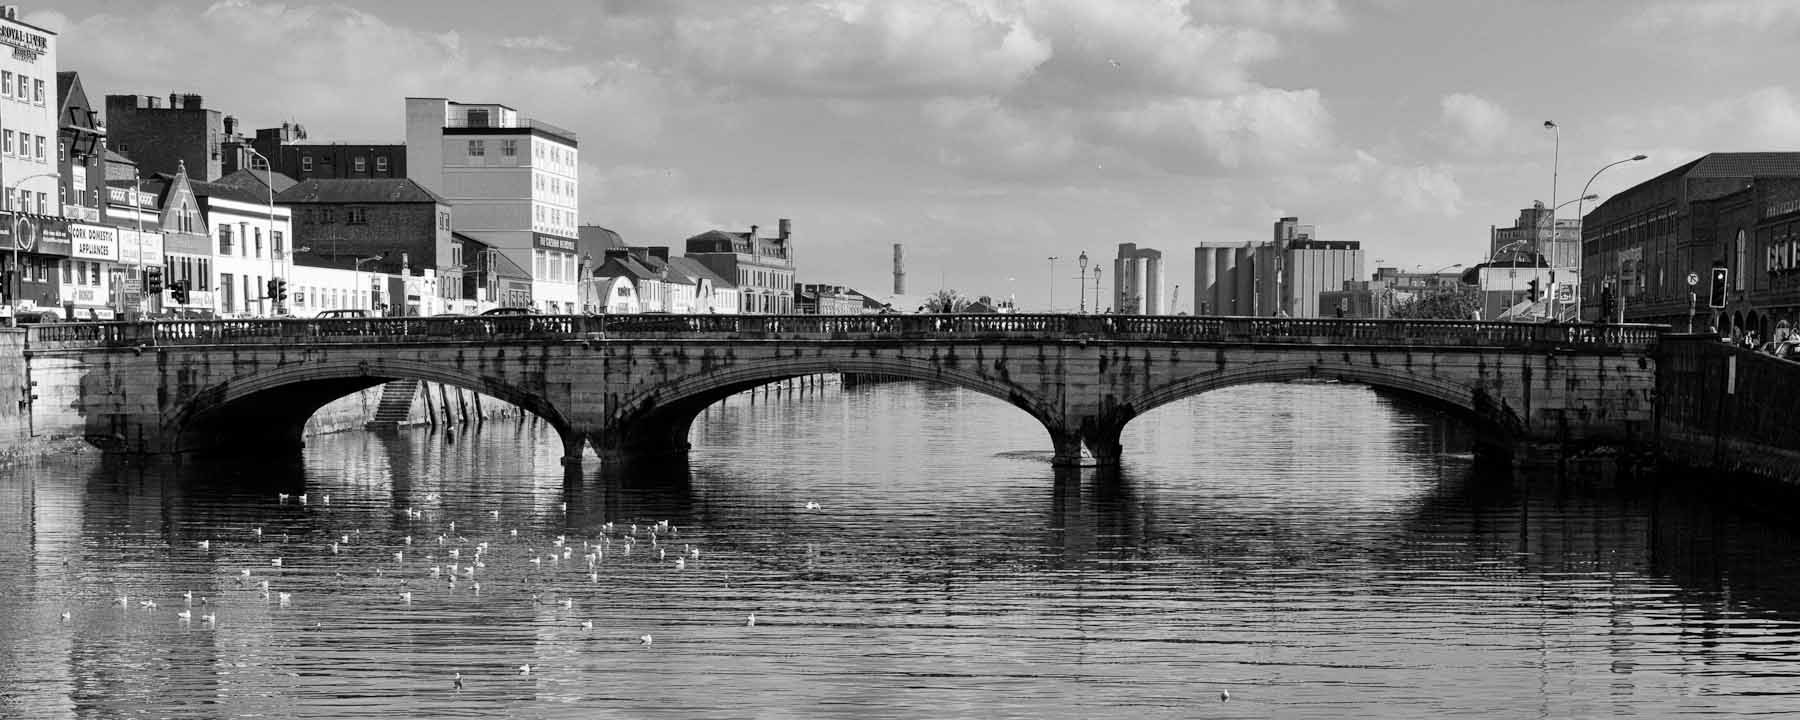 Historic Bridge in the Town of Cork in Southern Ireland in 2009